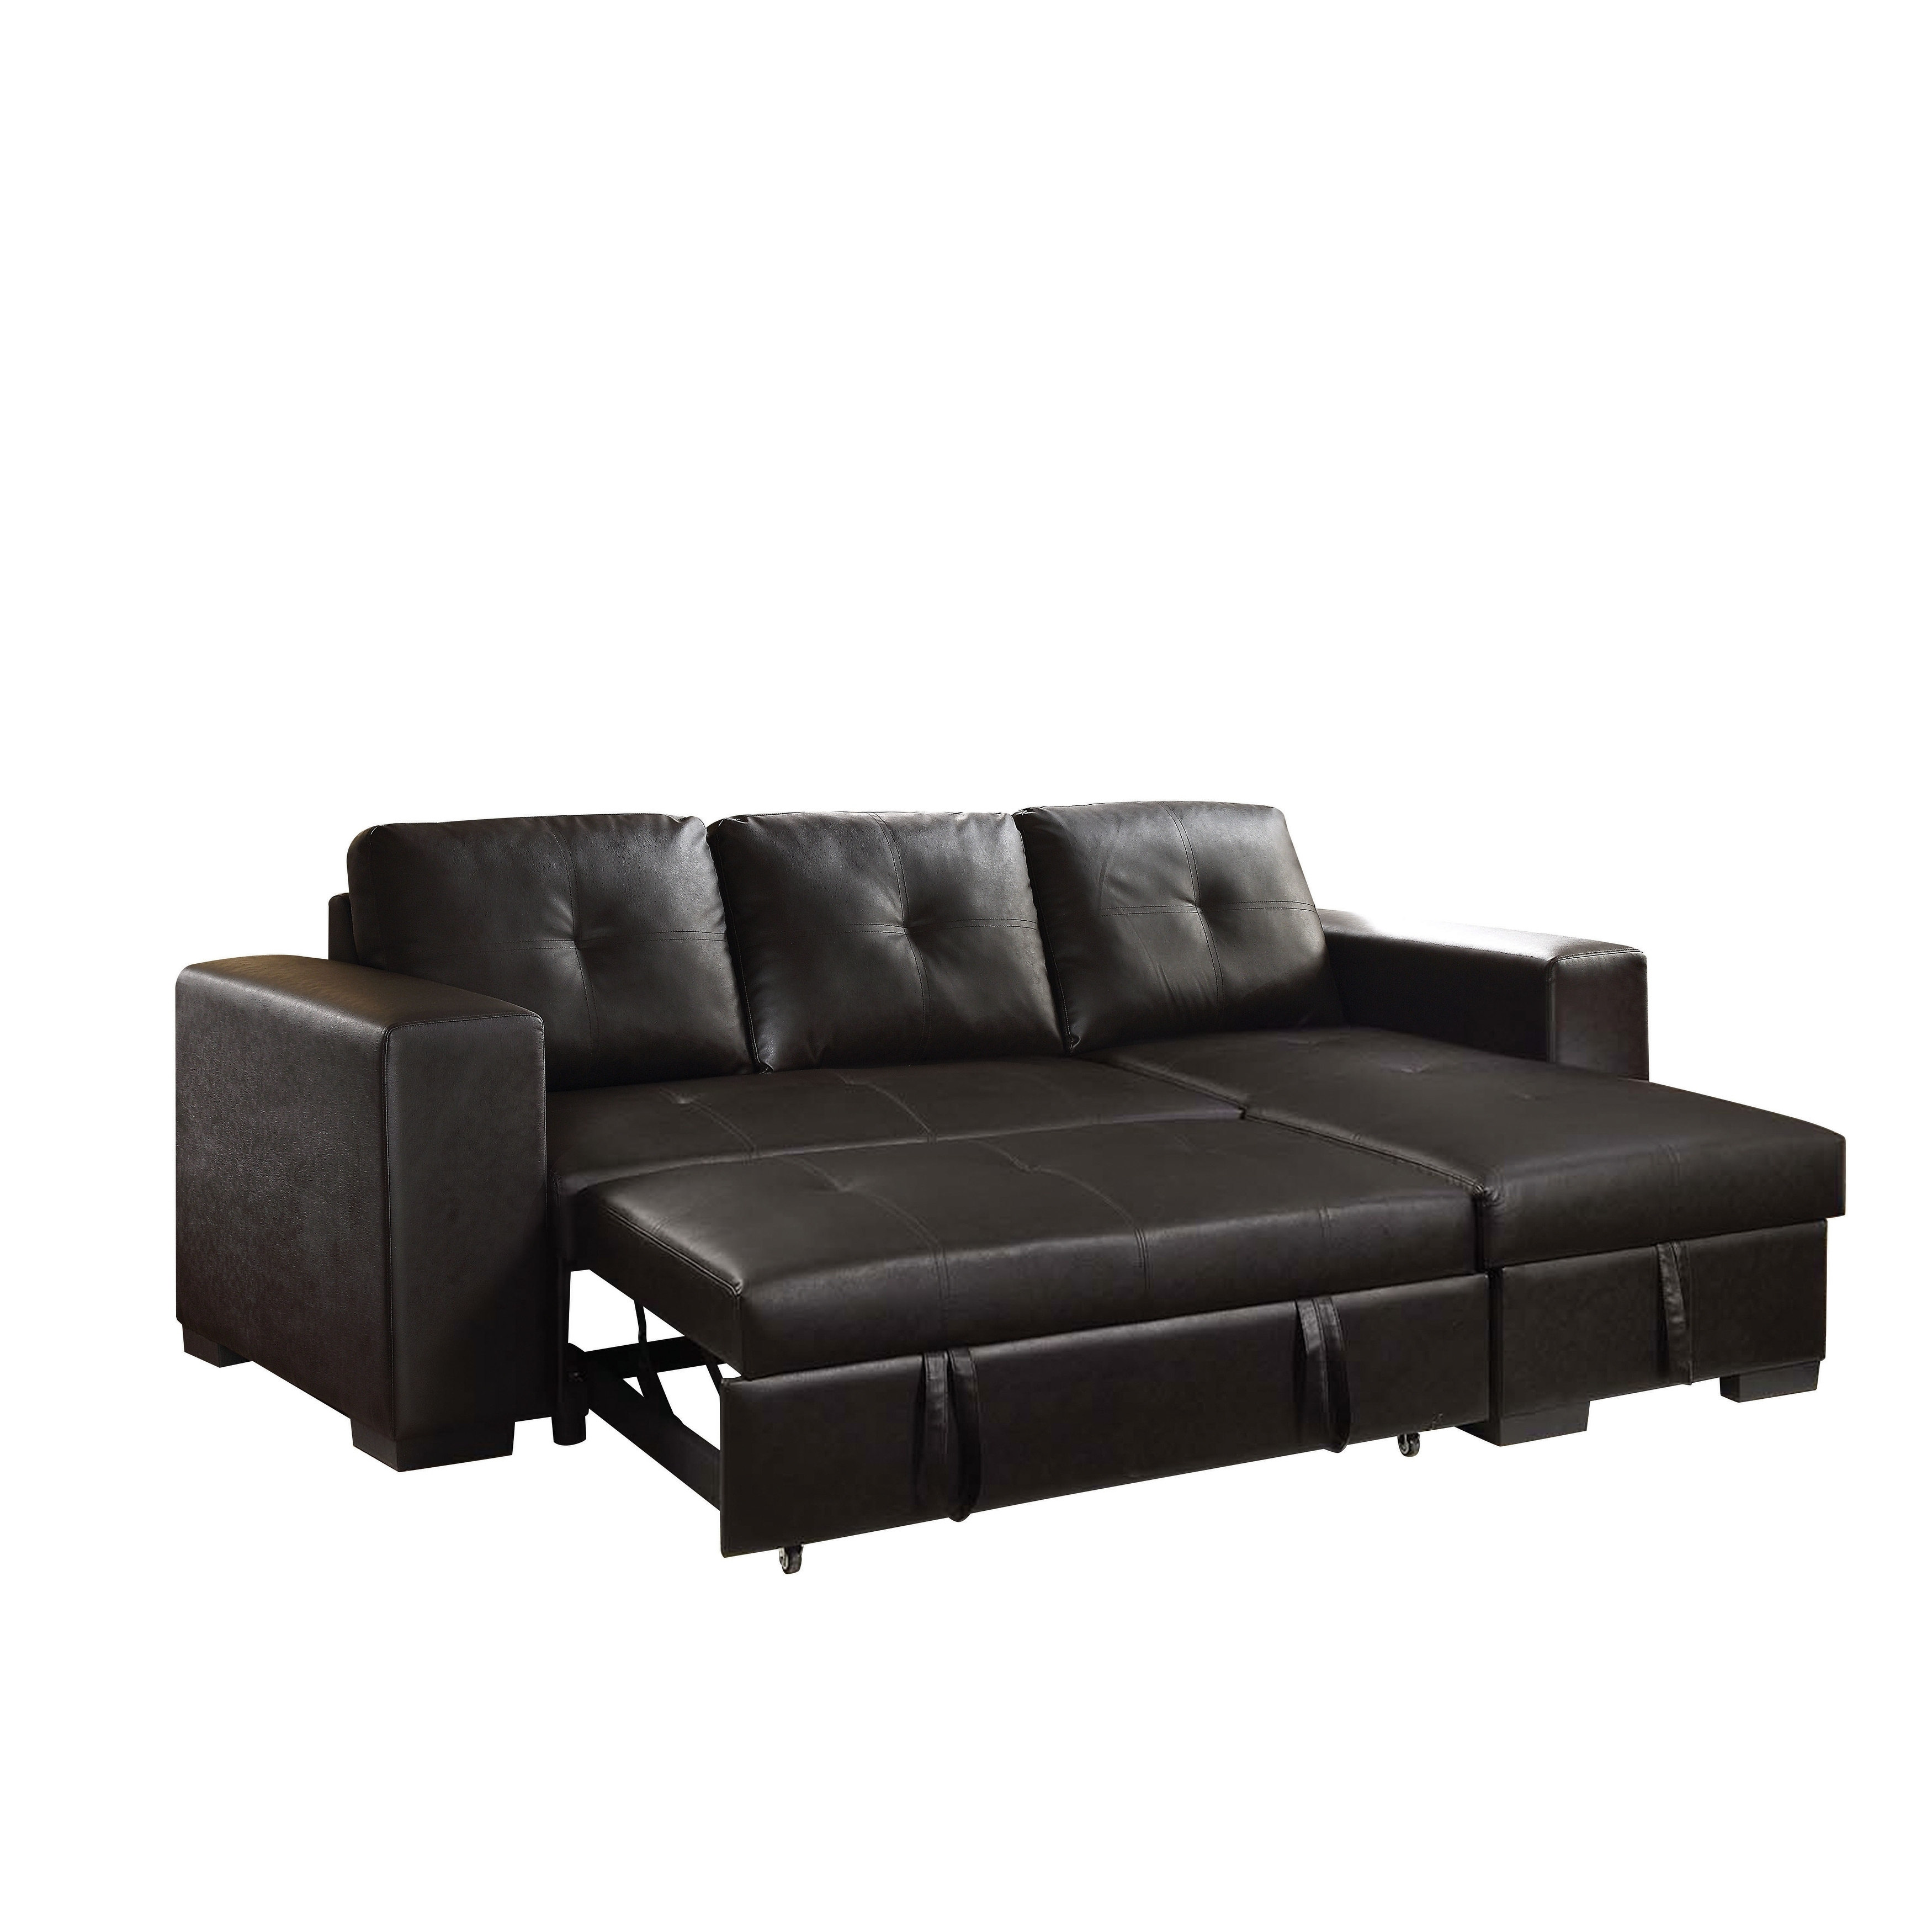 Sectional Pull Out Couch Acme Lloyd Sectional Sofa With Sleeper In Black Faux Leather